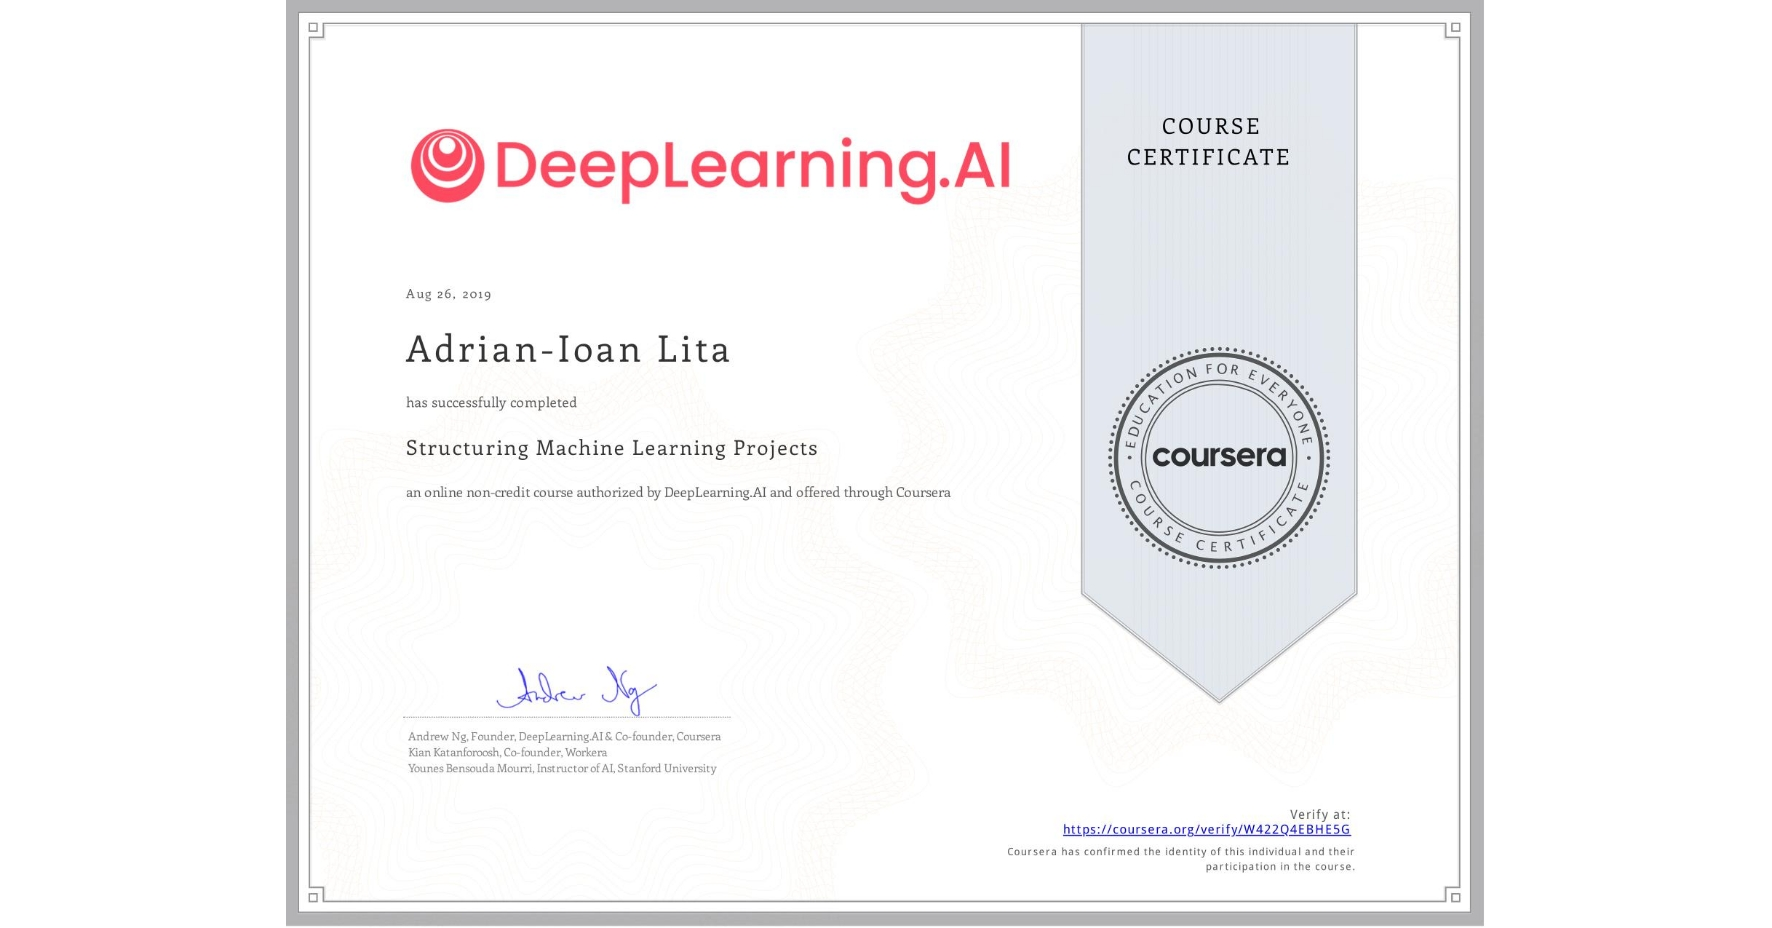 View certificate for Adrian-Ioan Lita, Structuring Machine Learning Projects, an online non-credit course authorized by DeepLearning.AI and offered through Coursera